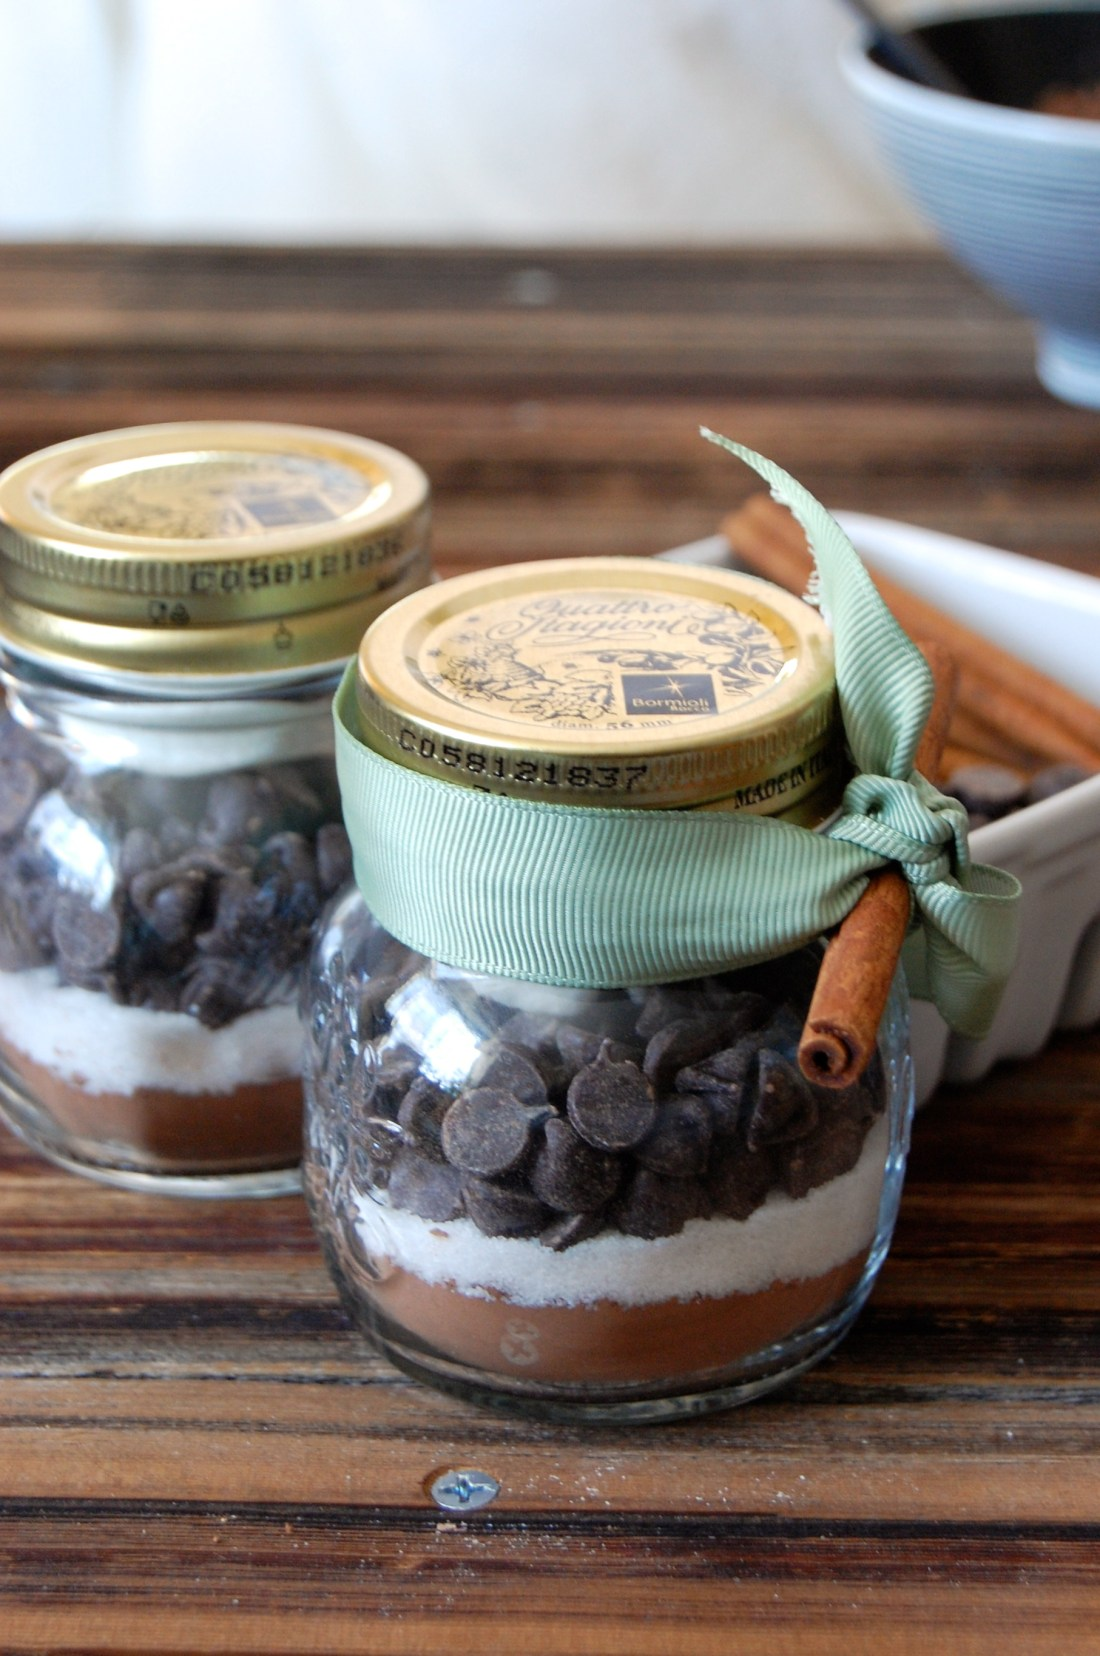 Holiday Gifts DIY Mason Jar Hot Chocolate Mix Cocoa Sugar Chocolate Chips